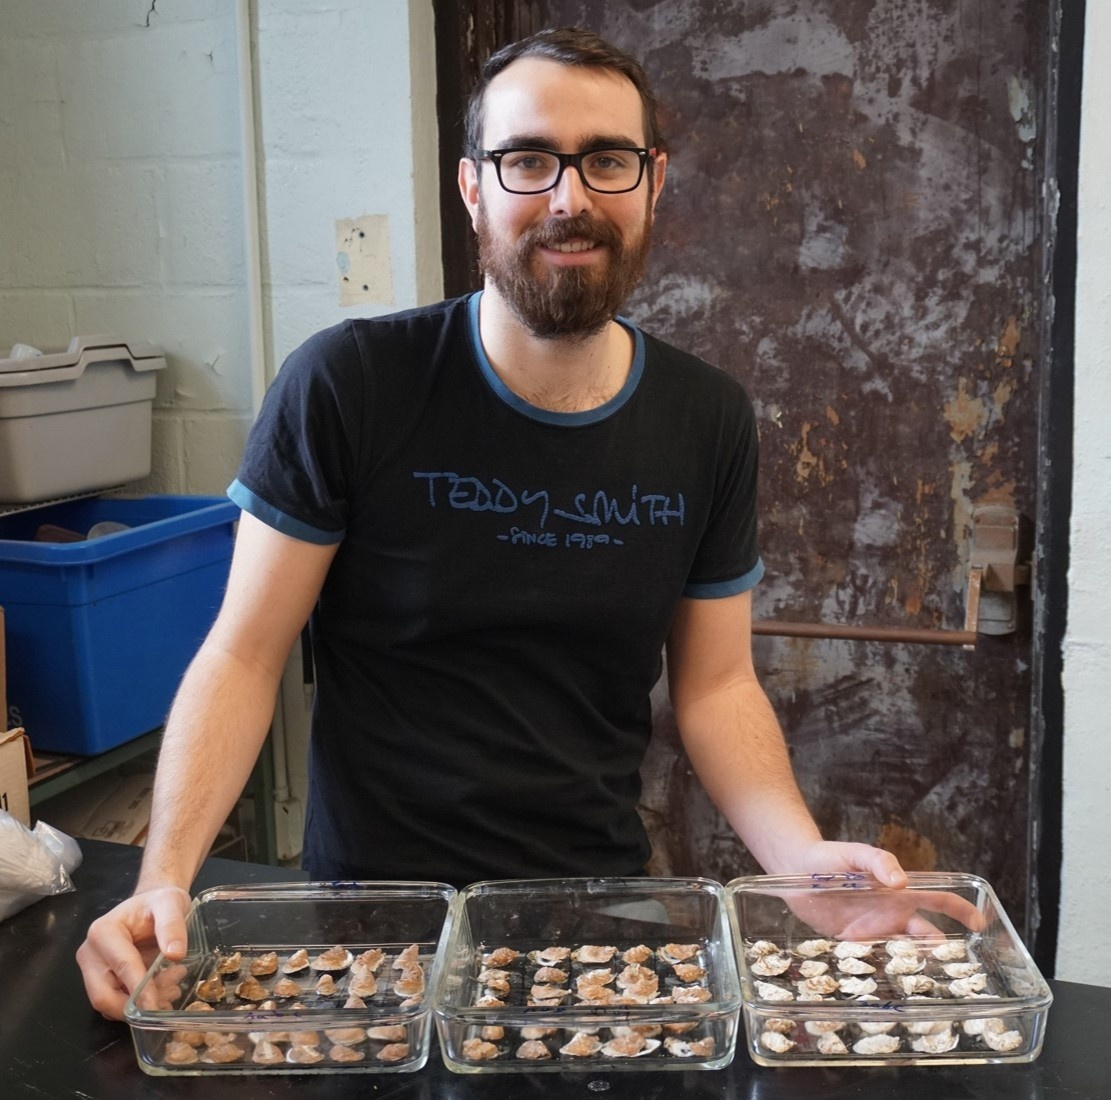 Emilien Pousse with 3 trays of oyster shells